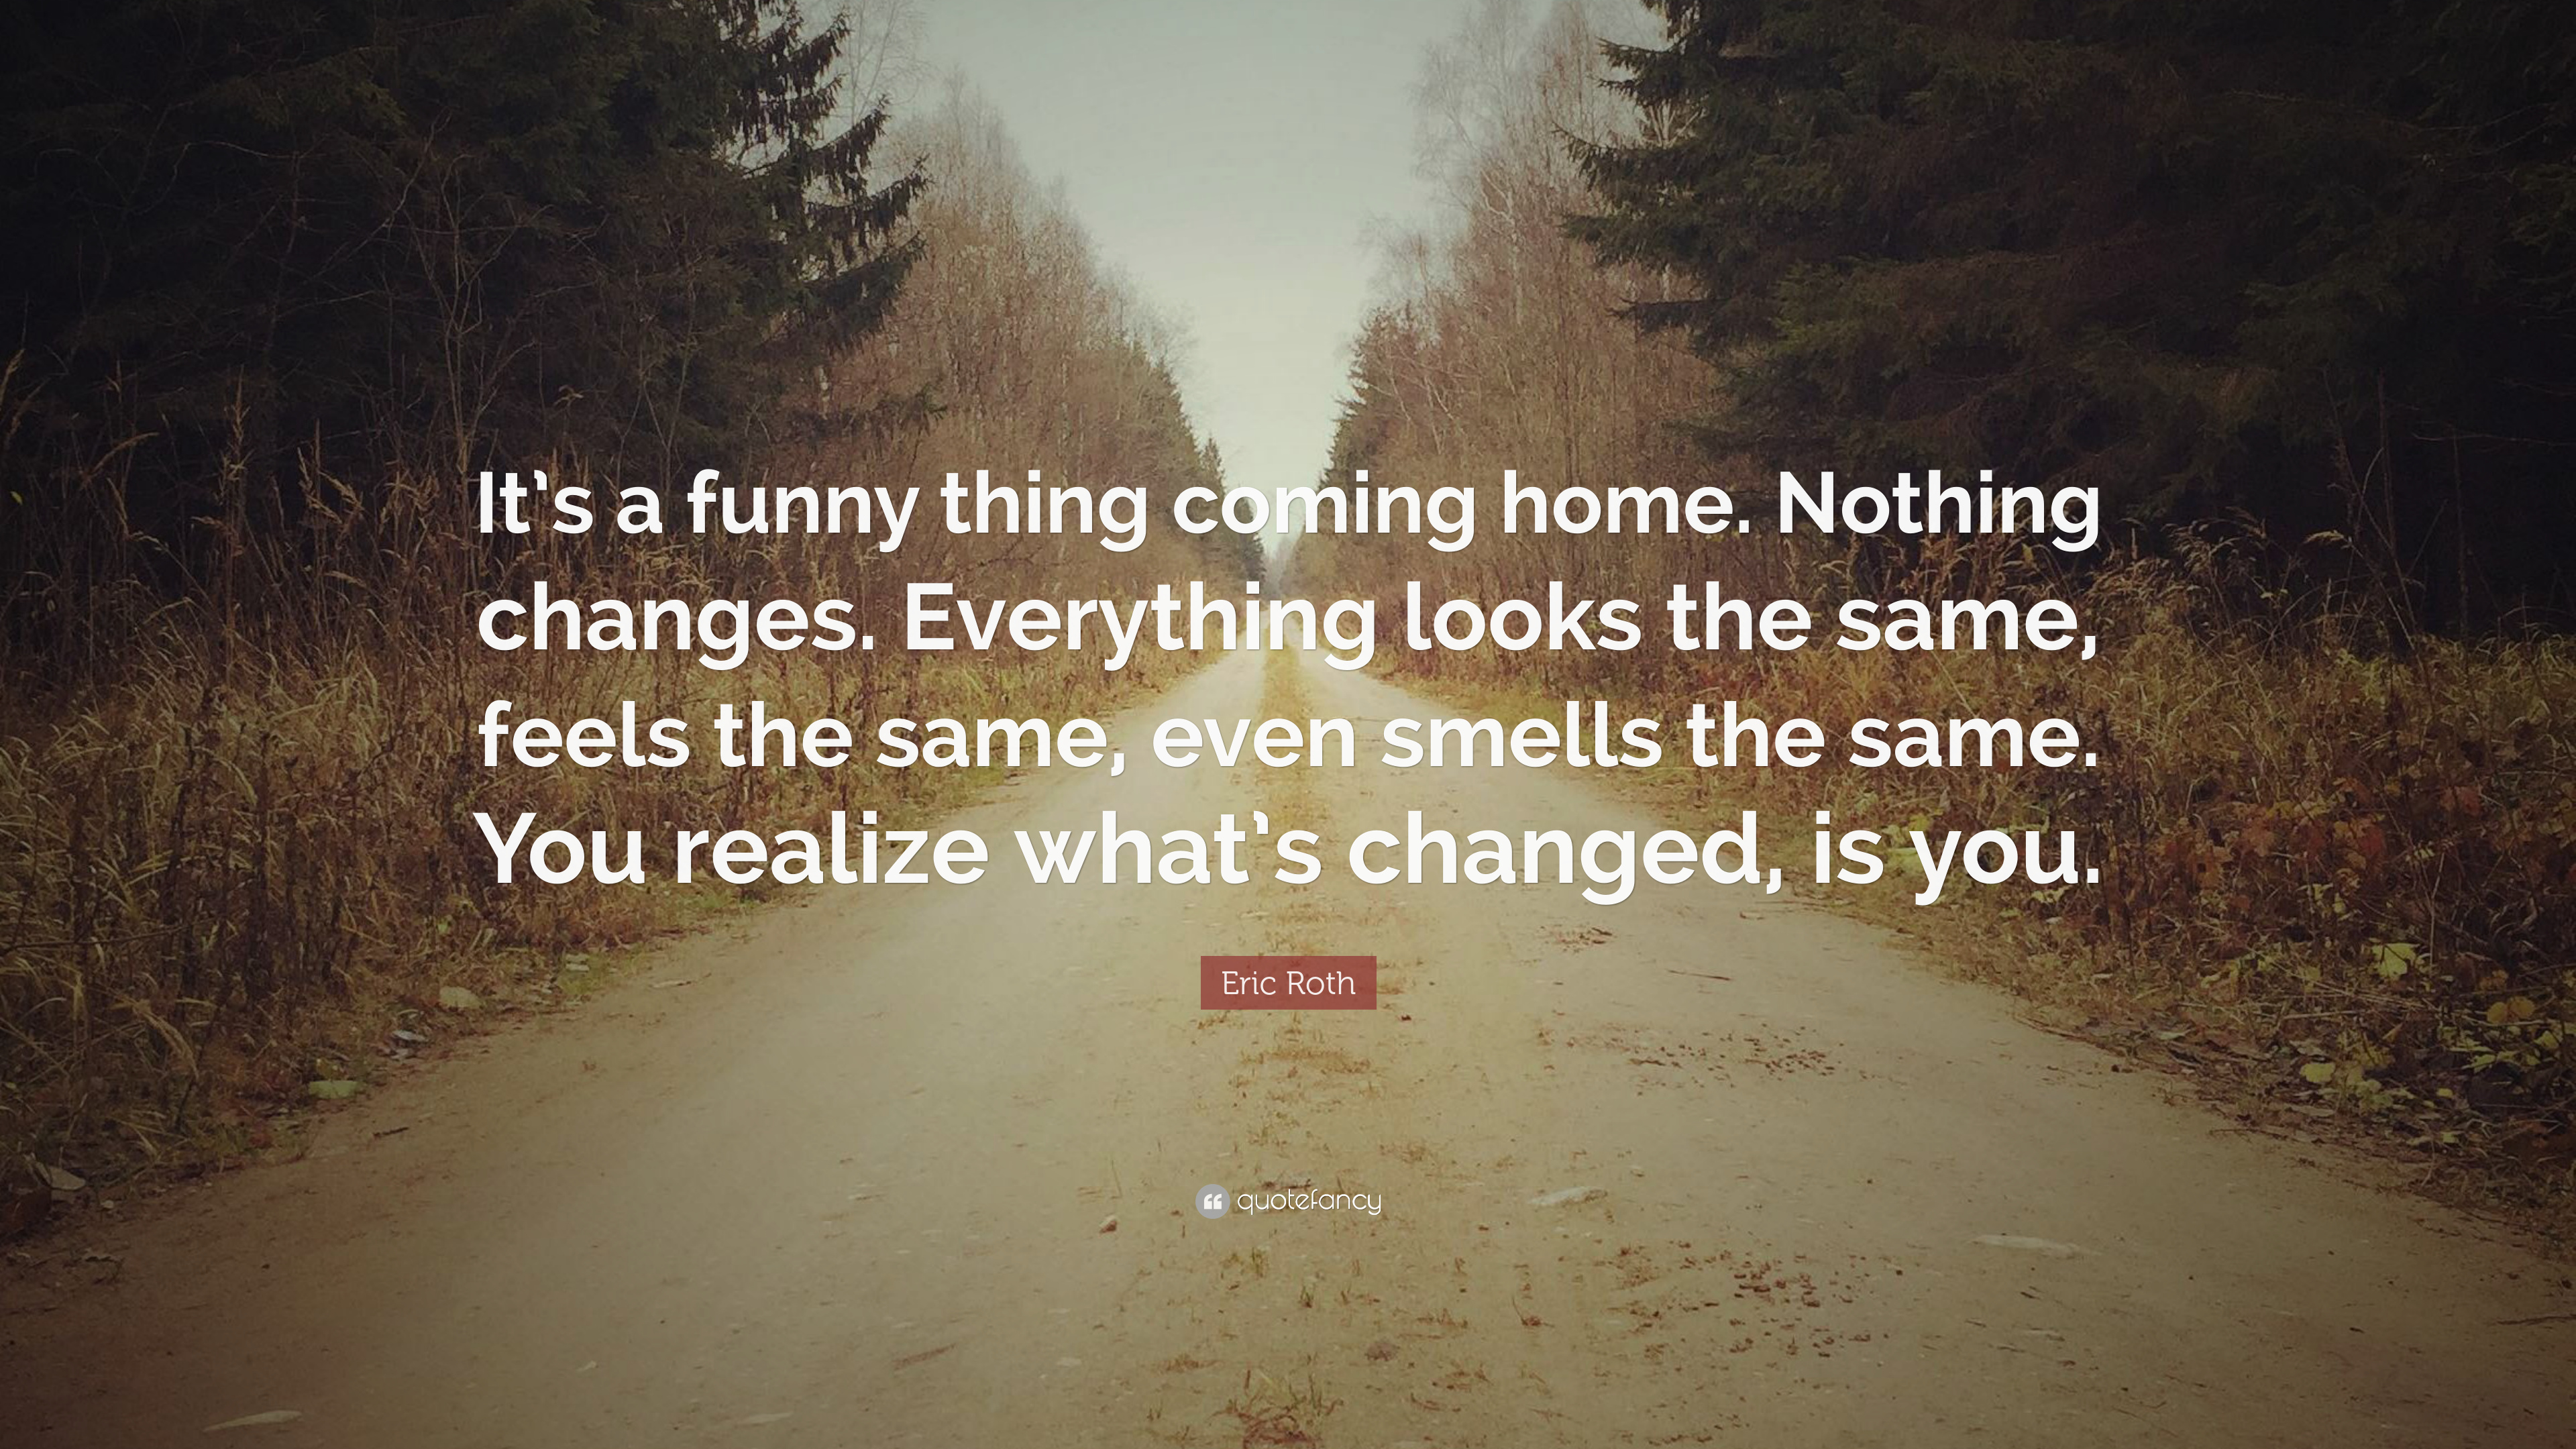 Funny Quotes About Nothing: Eric Roth Quotes (10 Wallpapers)